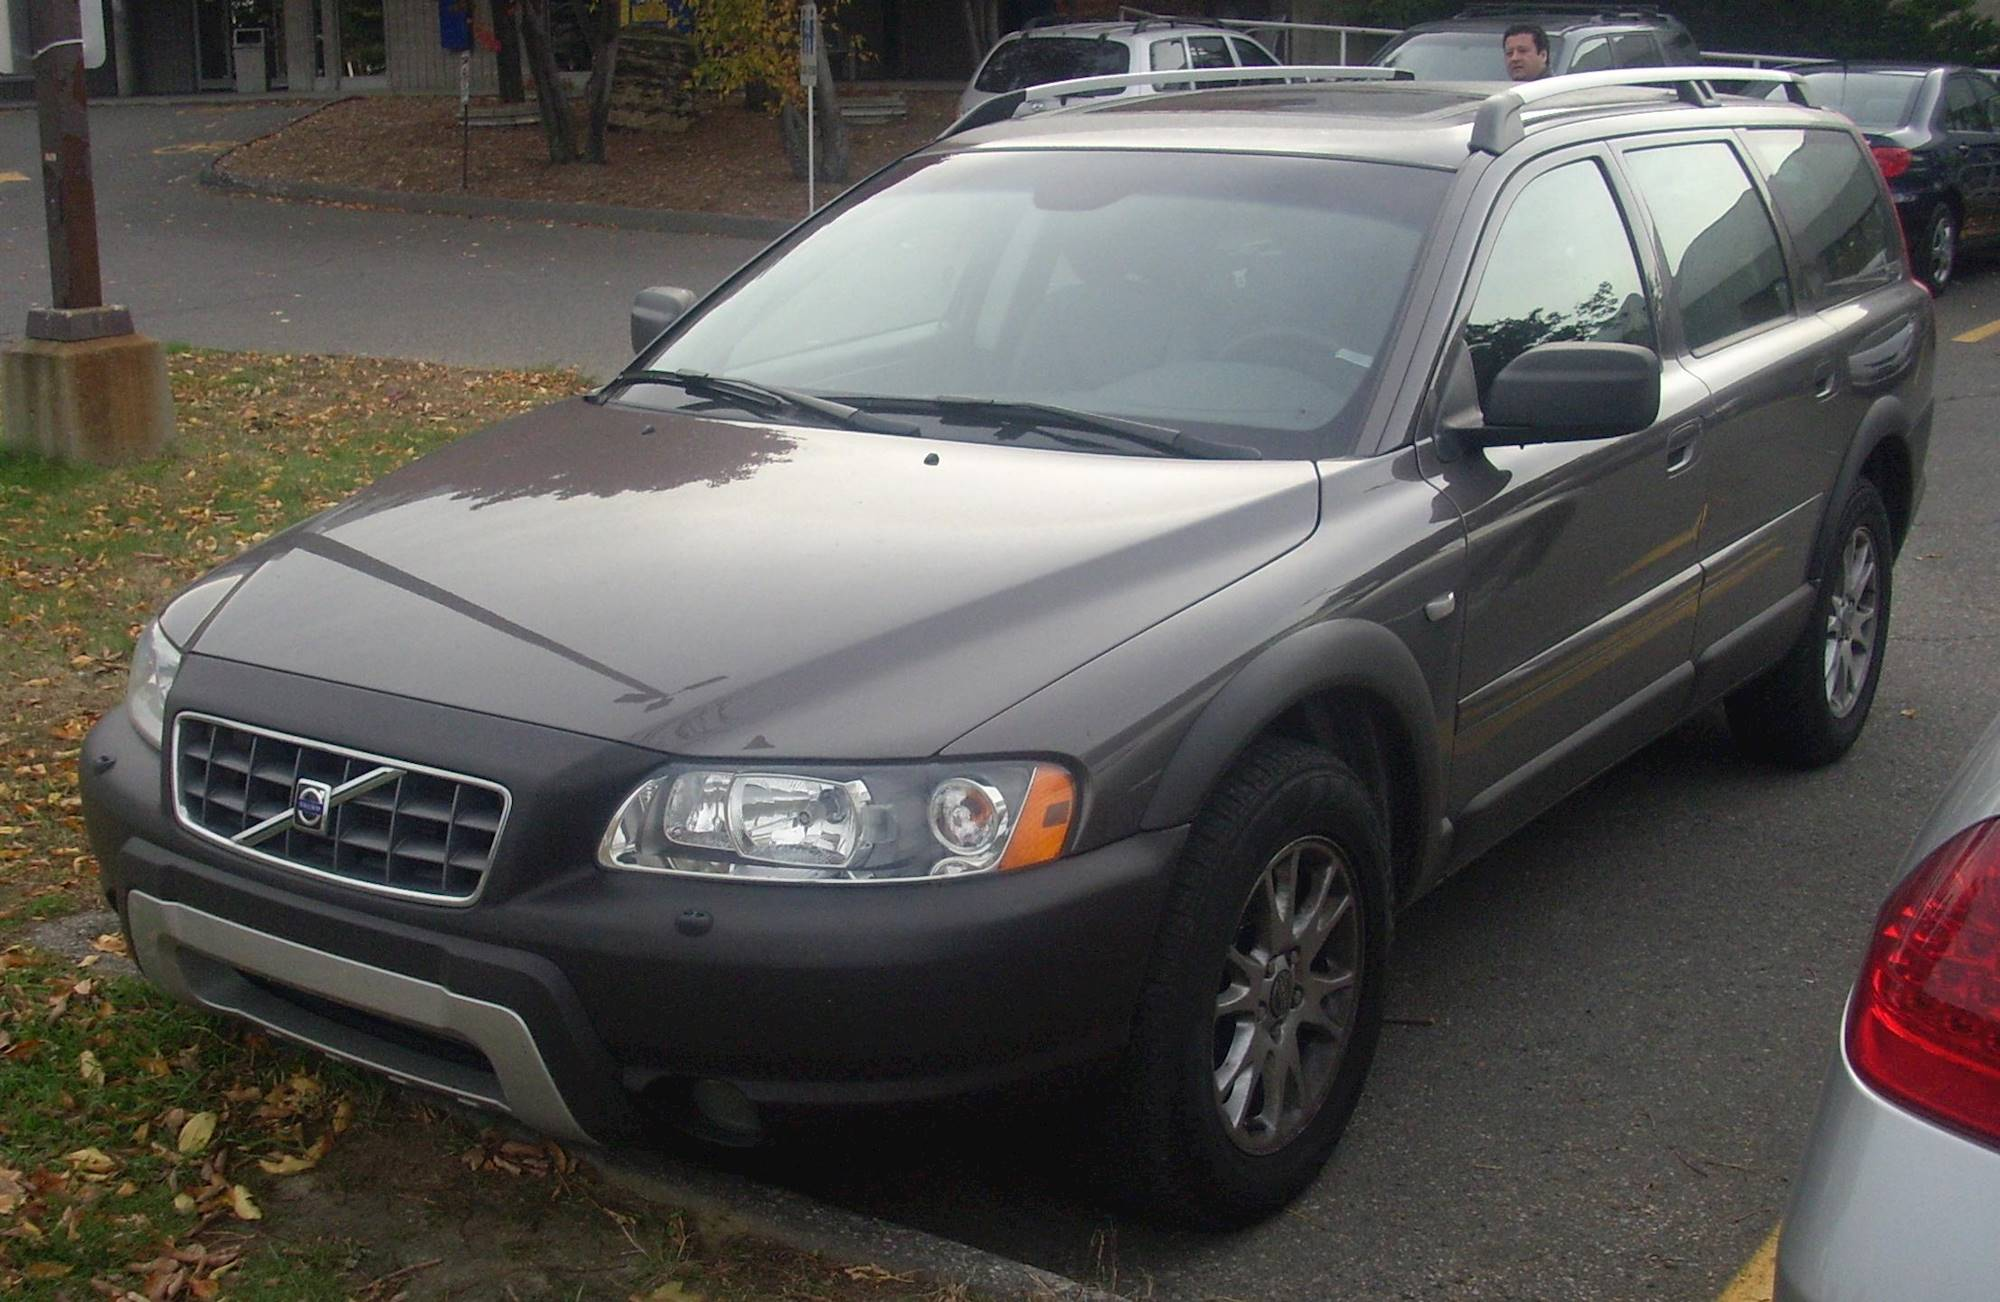 A E Ef Ea Eaea E Ca E C on Volvo V70 Cross Country